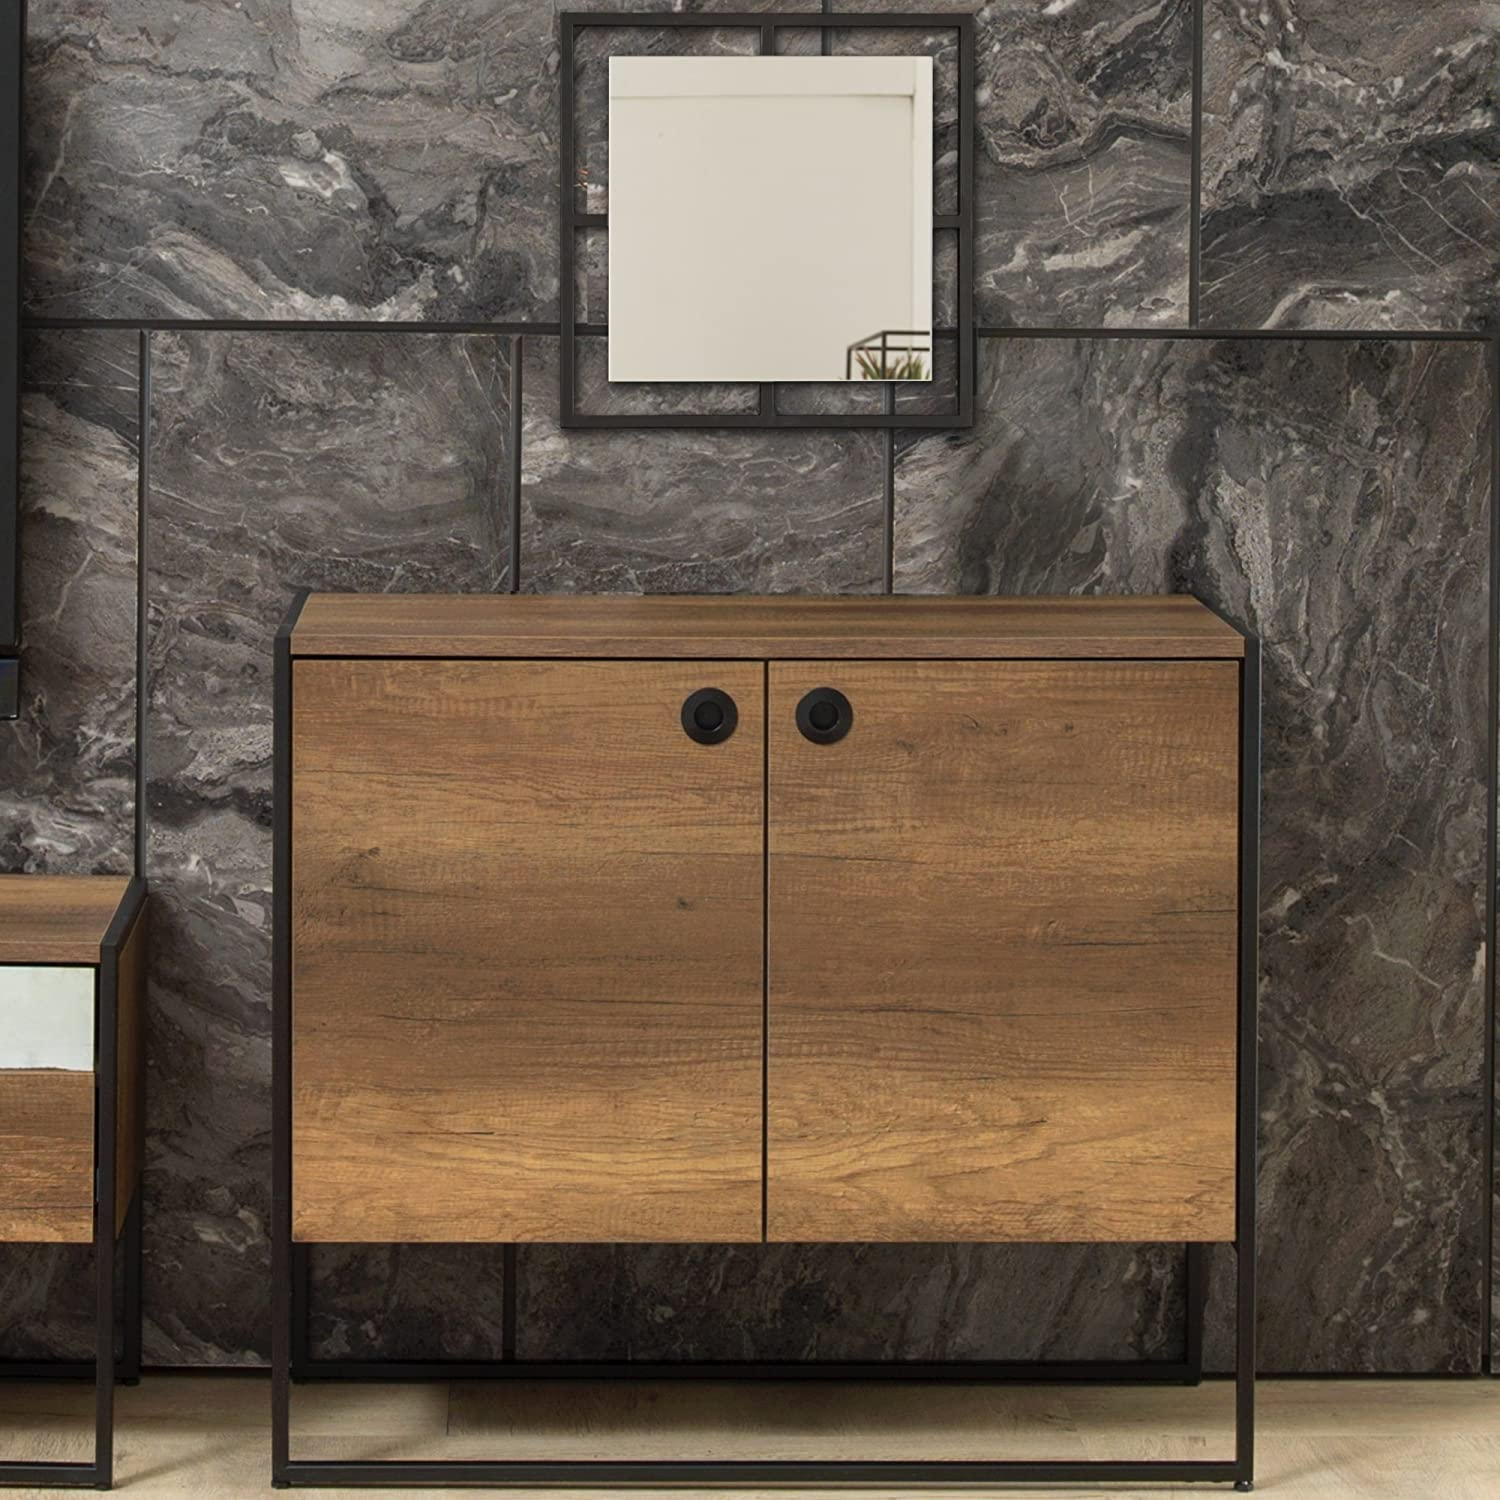 Adam and Illy Virtues CONSOLE W/TWO DOORS & MIRROR, Baroque/Black